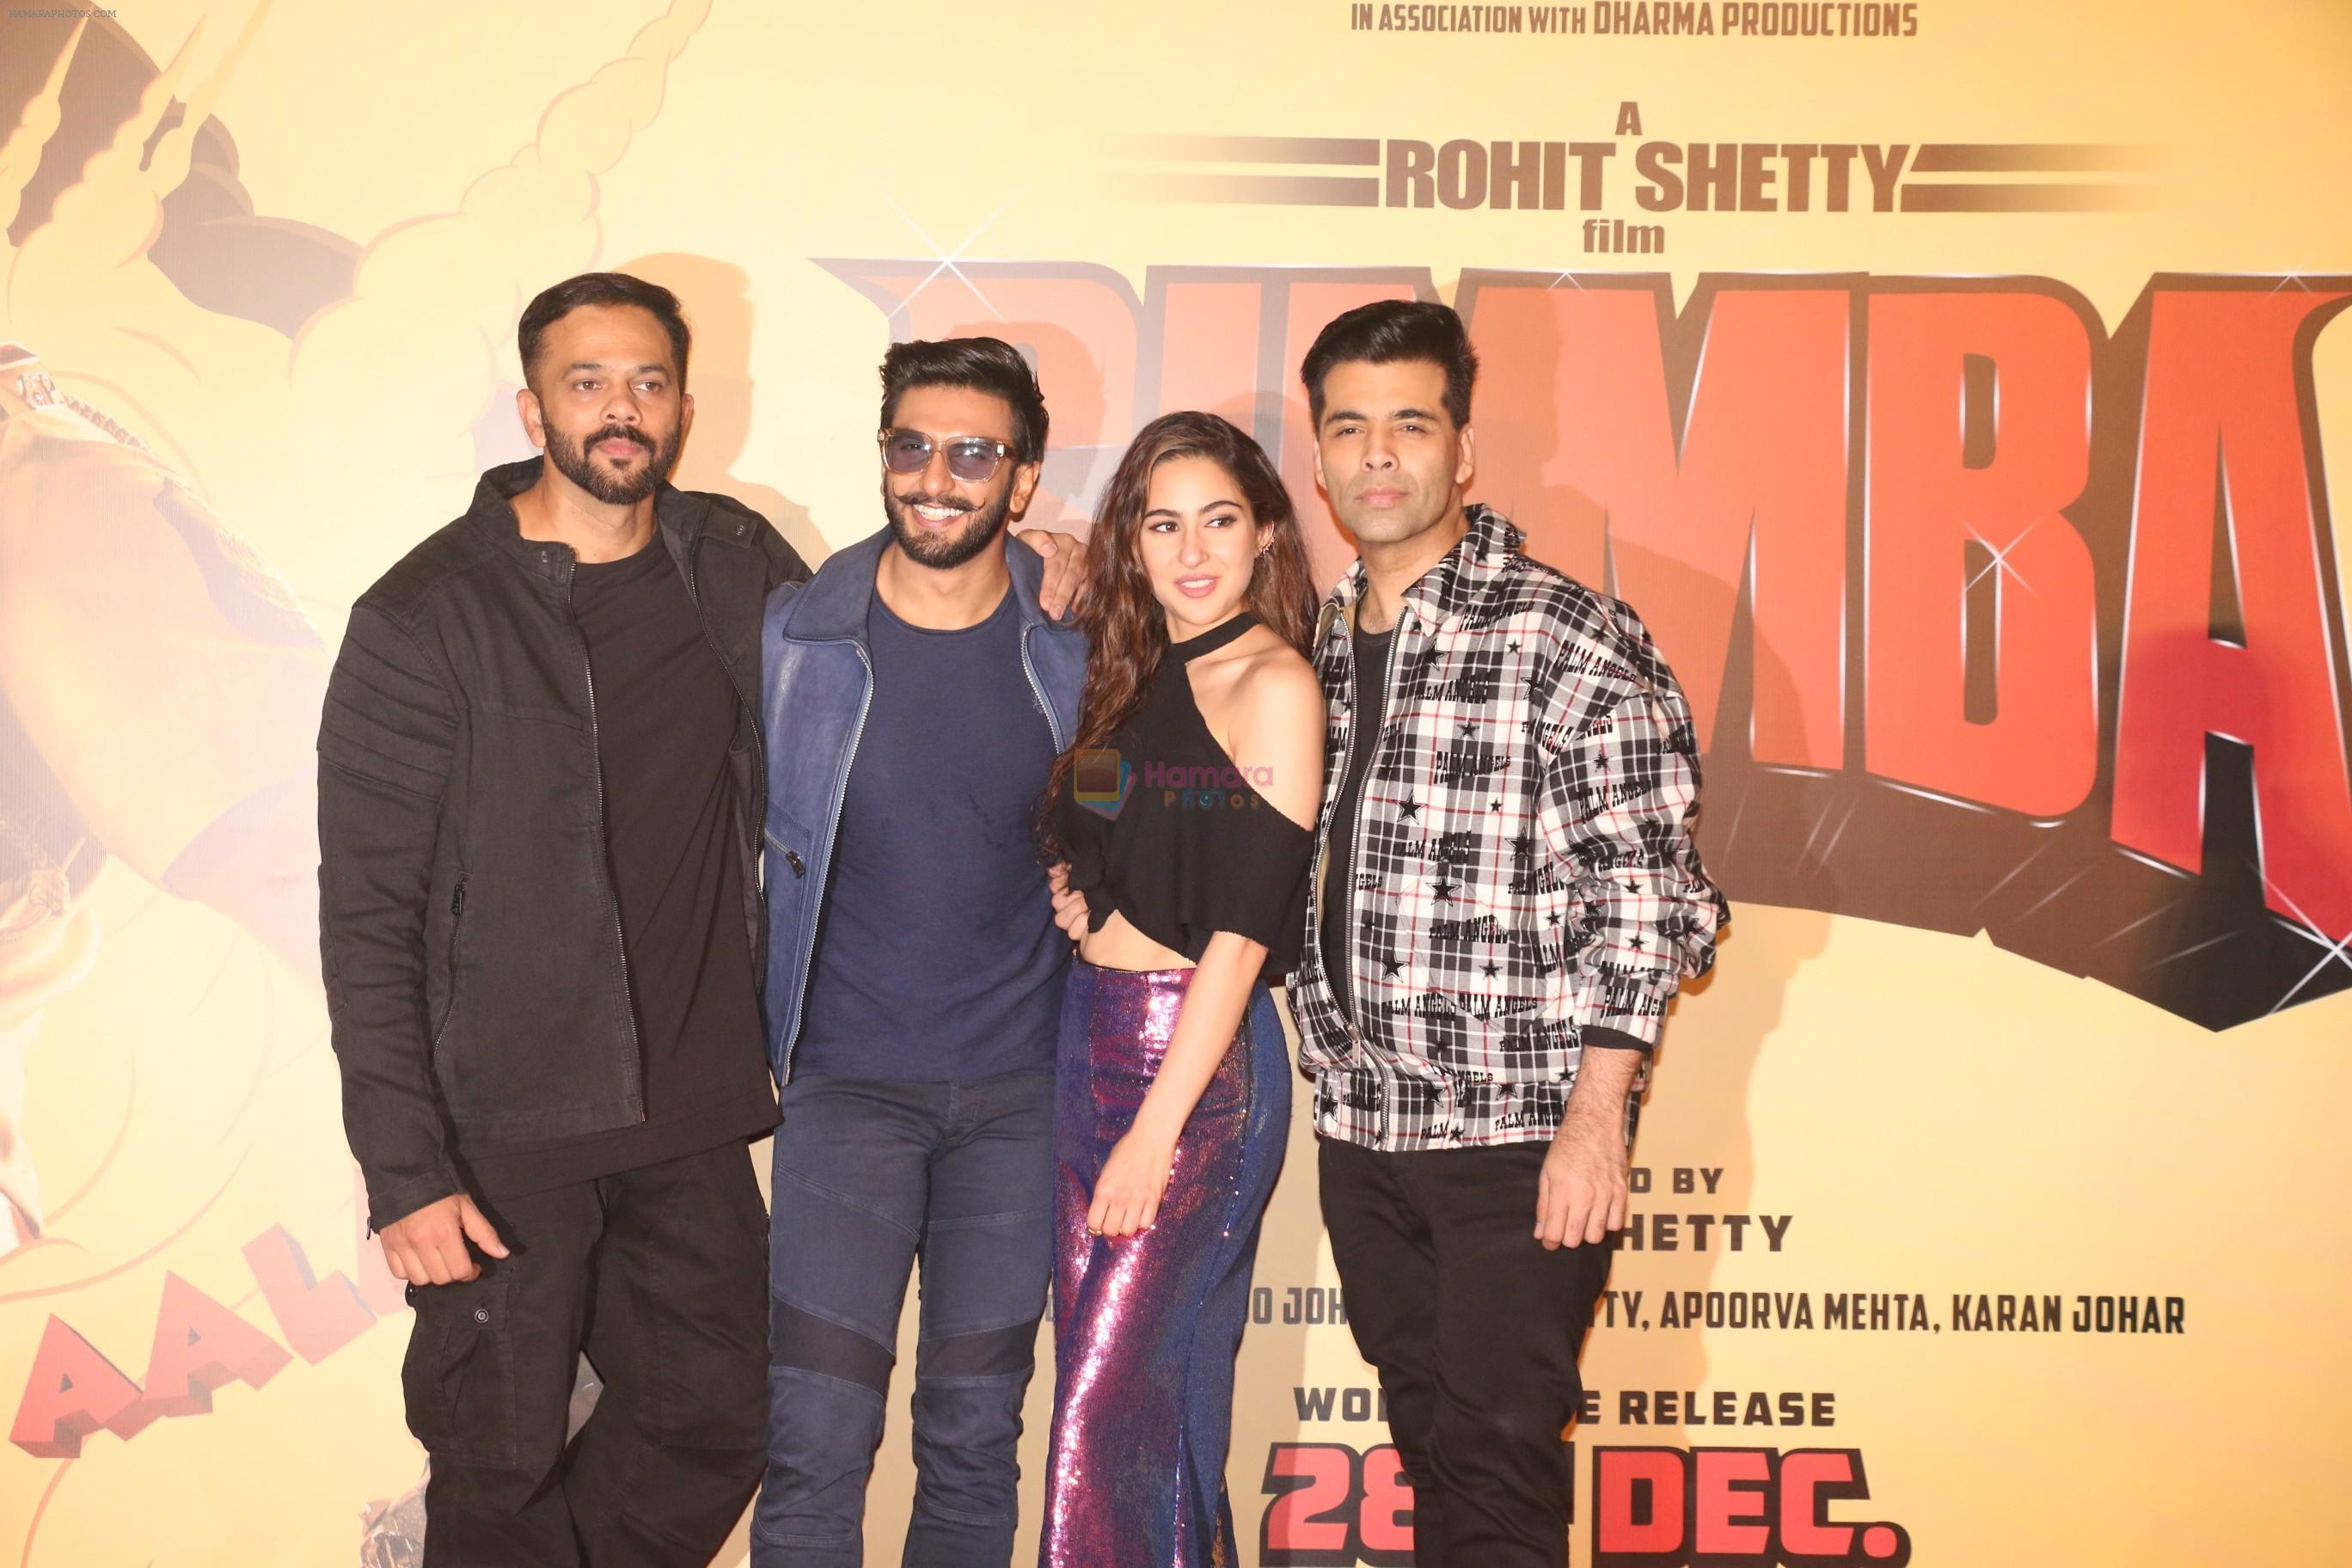 Ranveer Singh, Rohit Shetty, Sara Ali Khan, Karan Johar at the Trailer launch of film Simmba in PVR icon, andheri on 4th Dec 2018